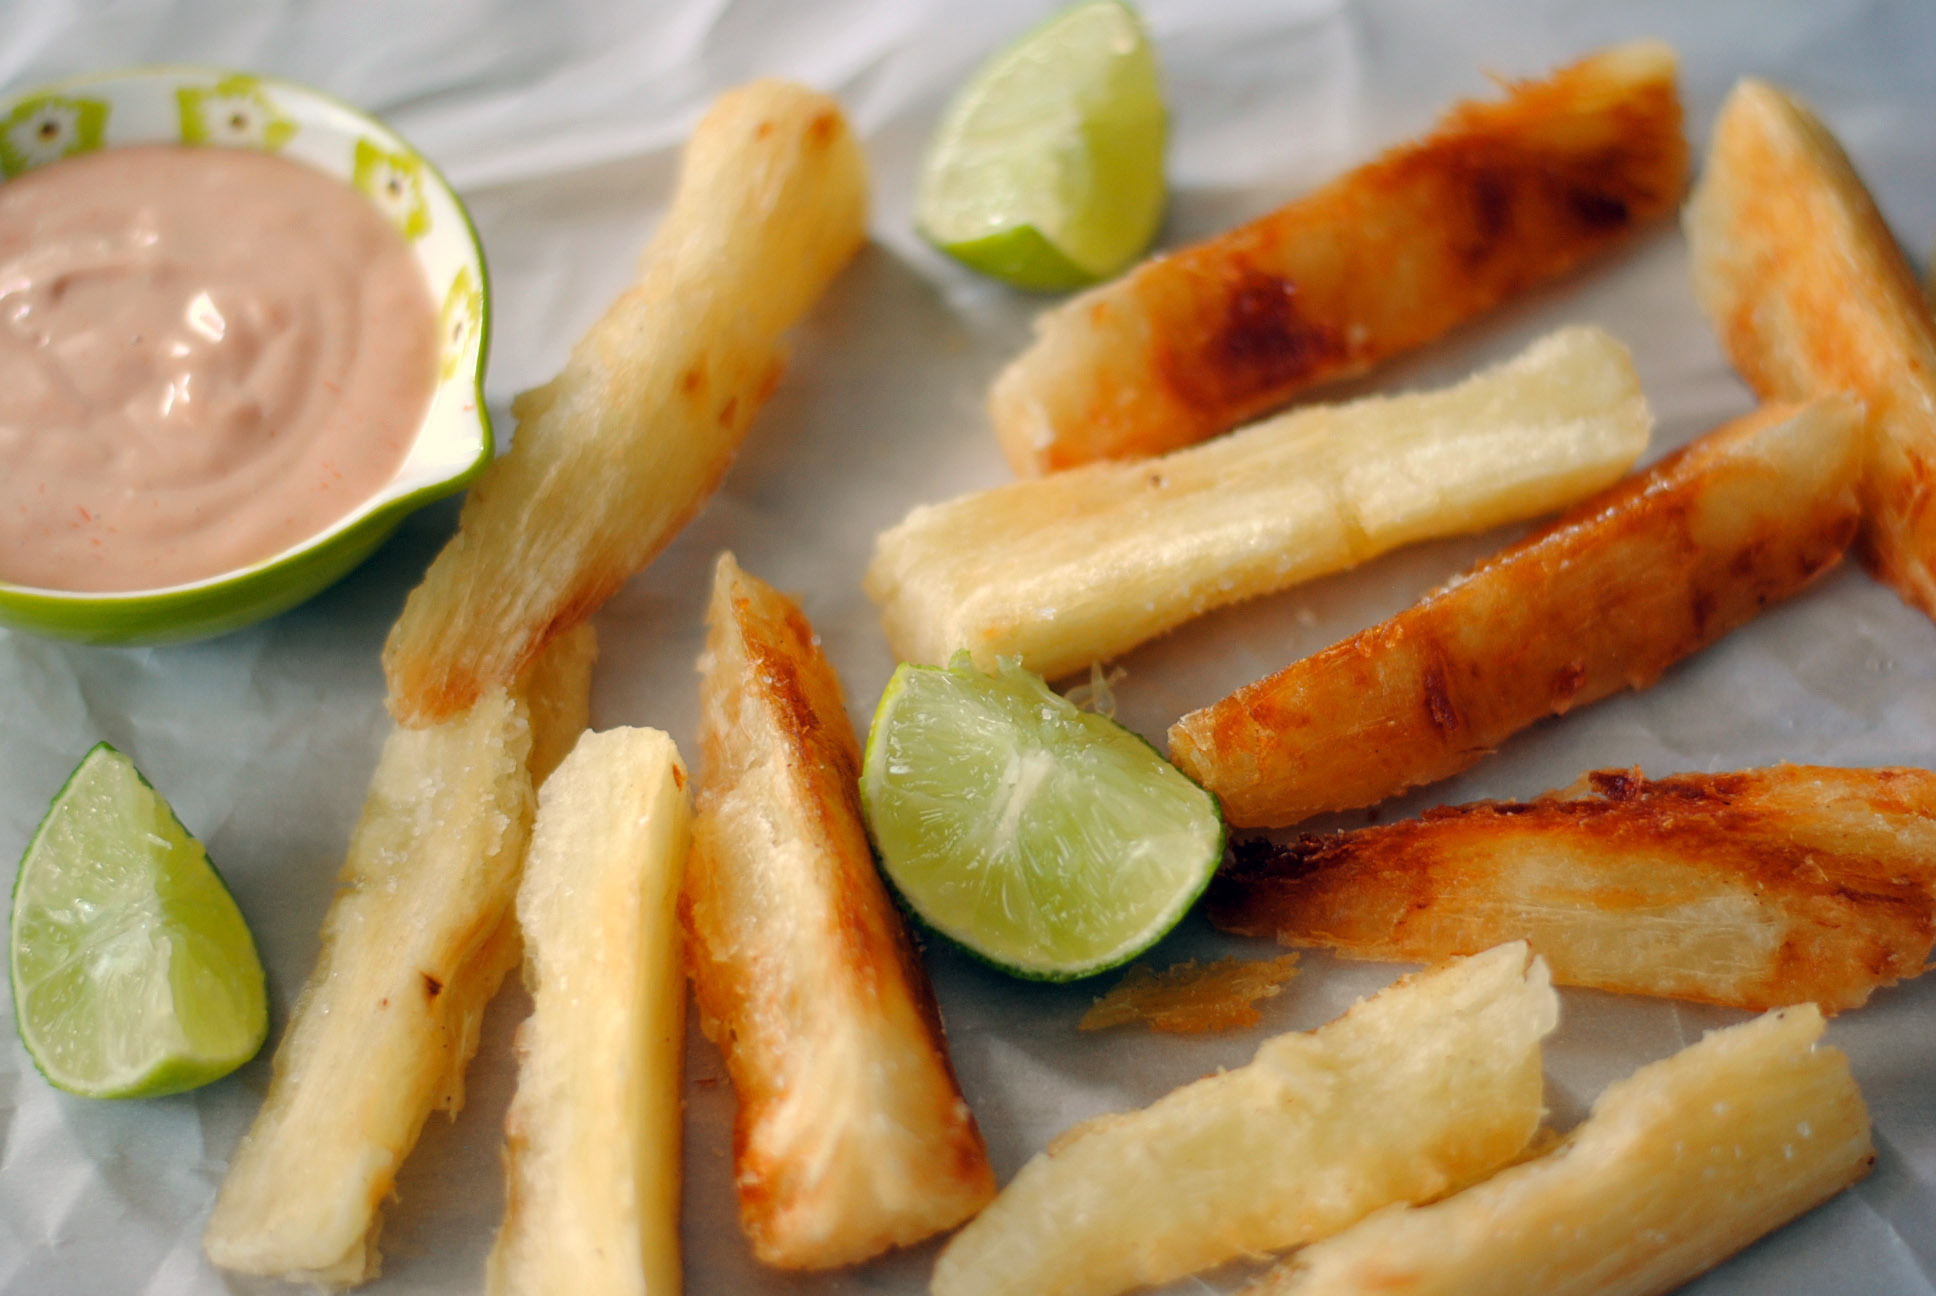 Yuca Or Cassava Fries